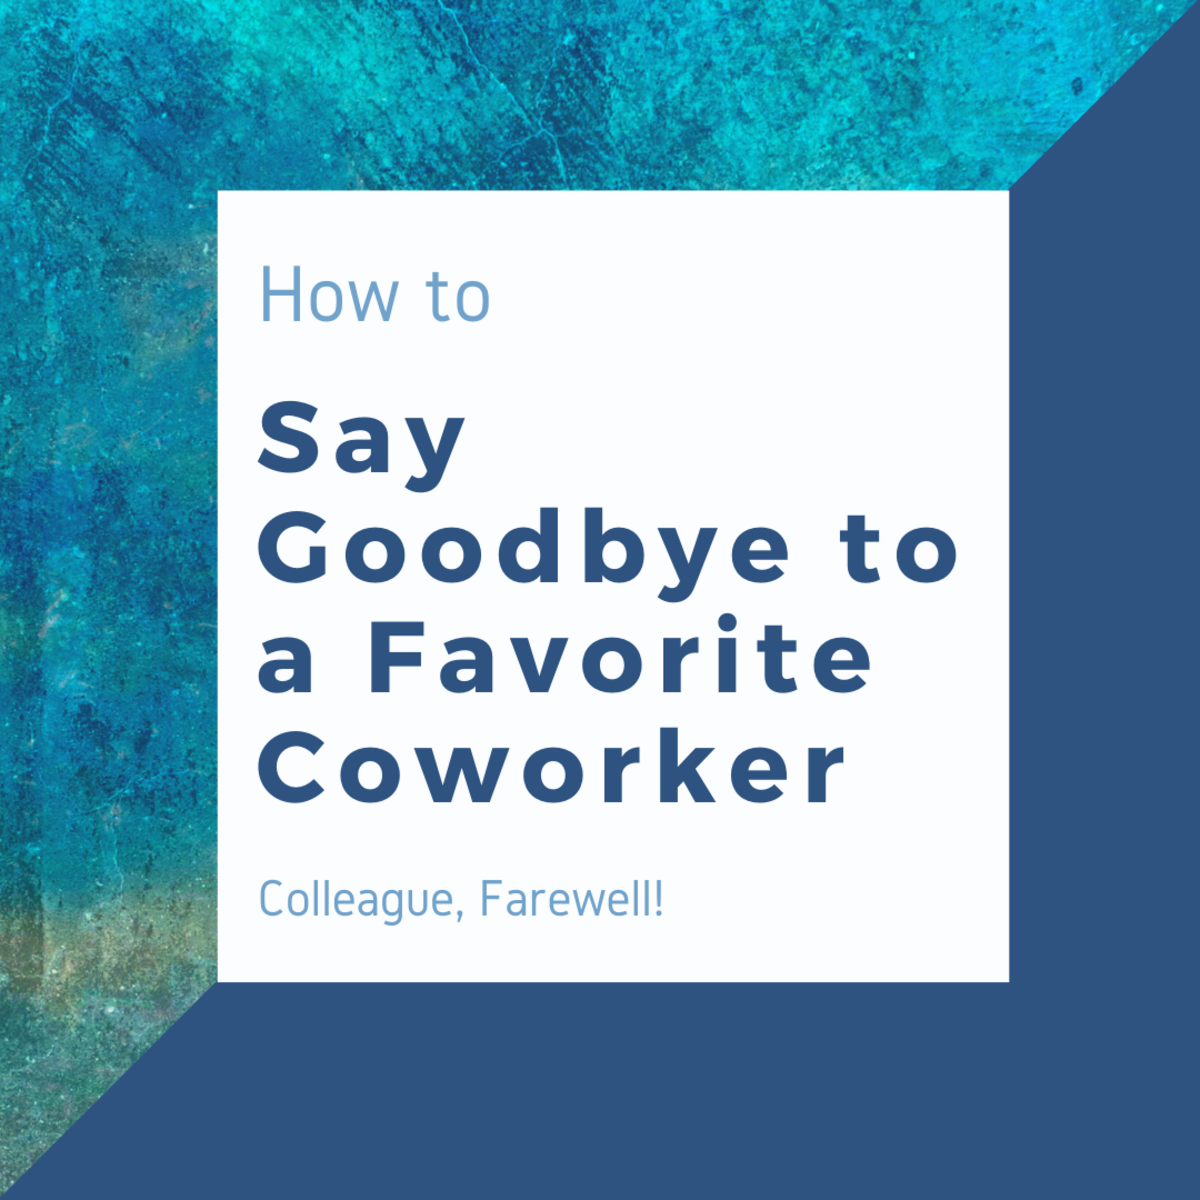 Saying Goodbye to a Favorite Coworker – Colleague, Farewell!